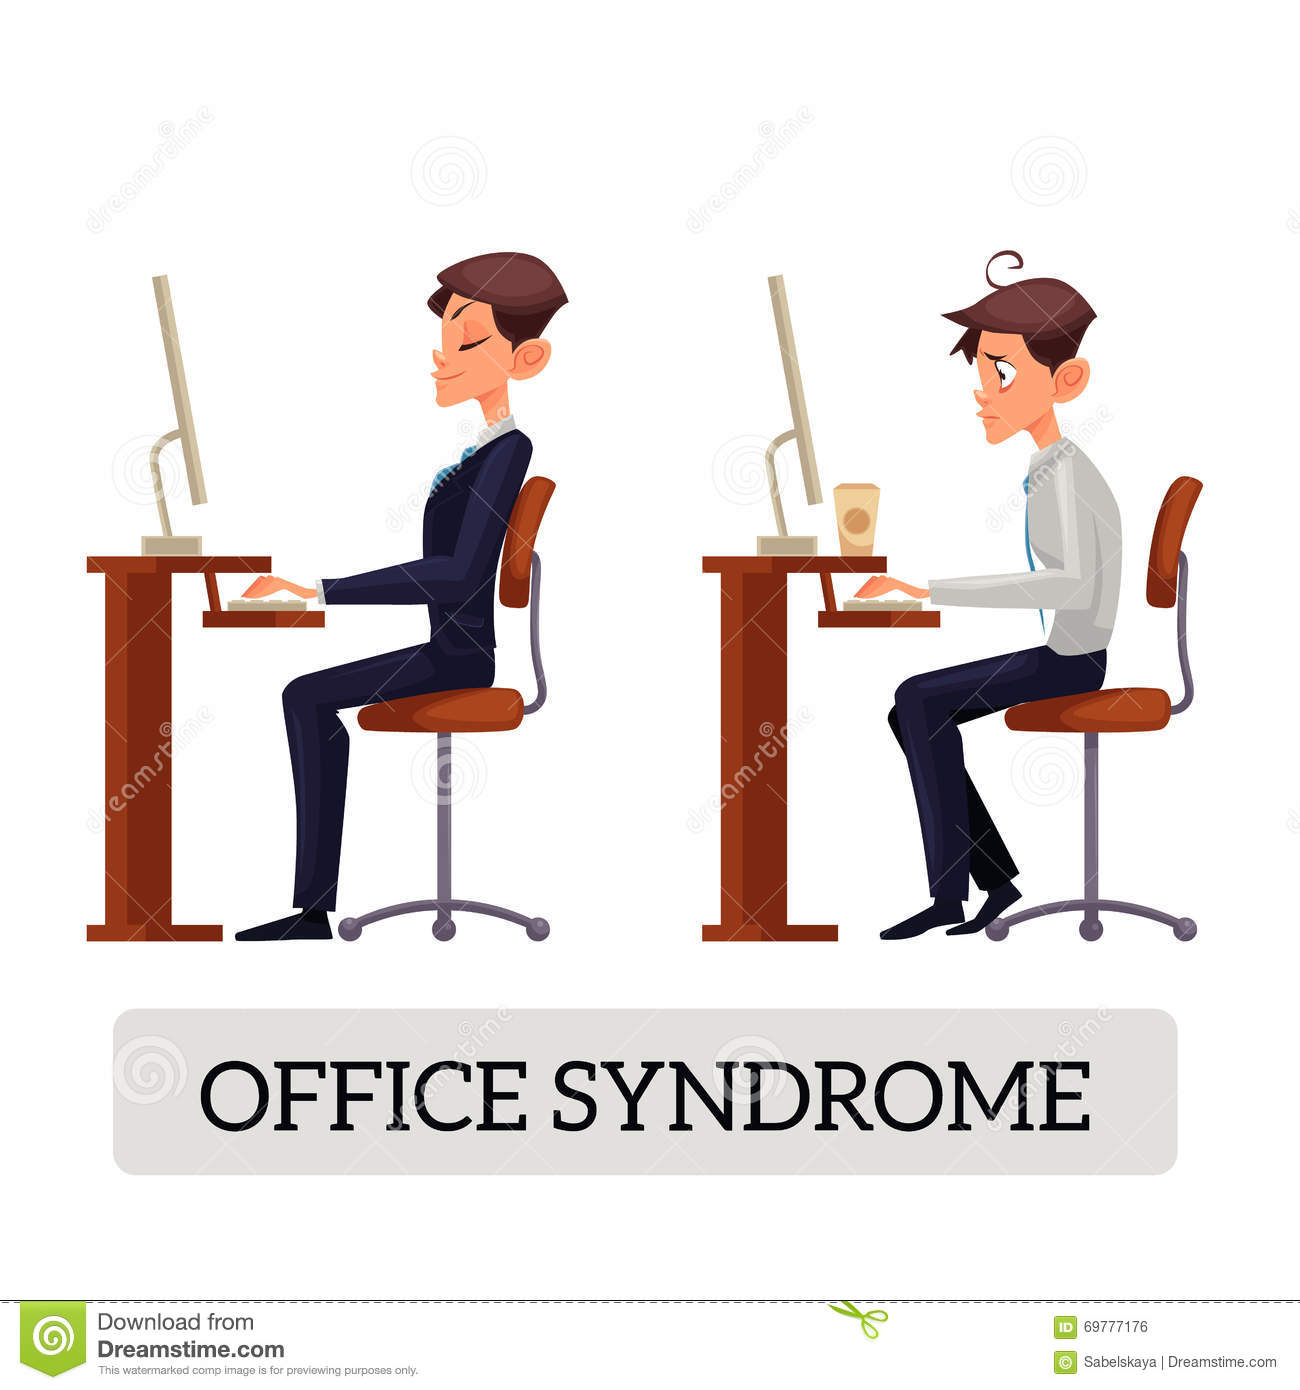 Demonstration Of Correct And Incorrect Sitting On A Chair